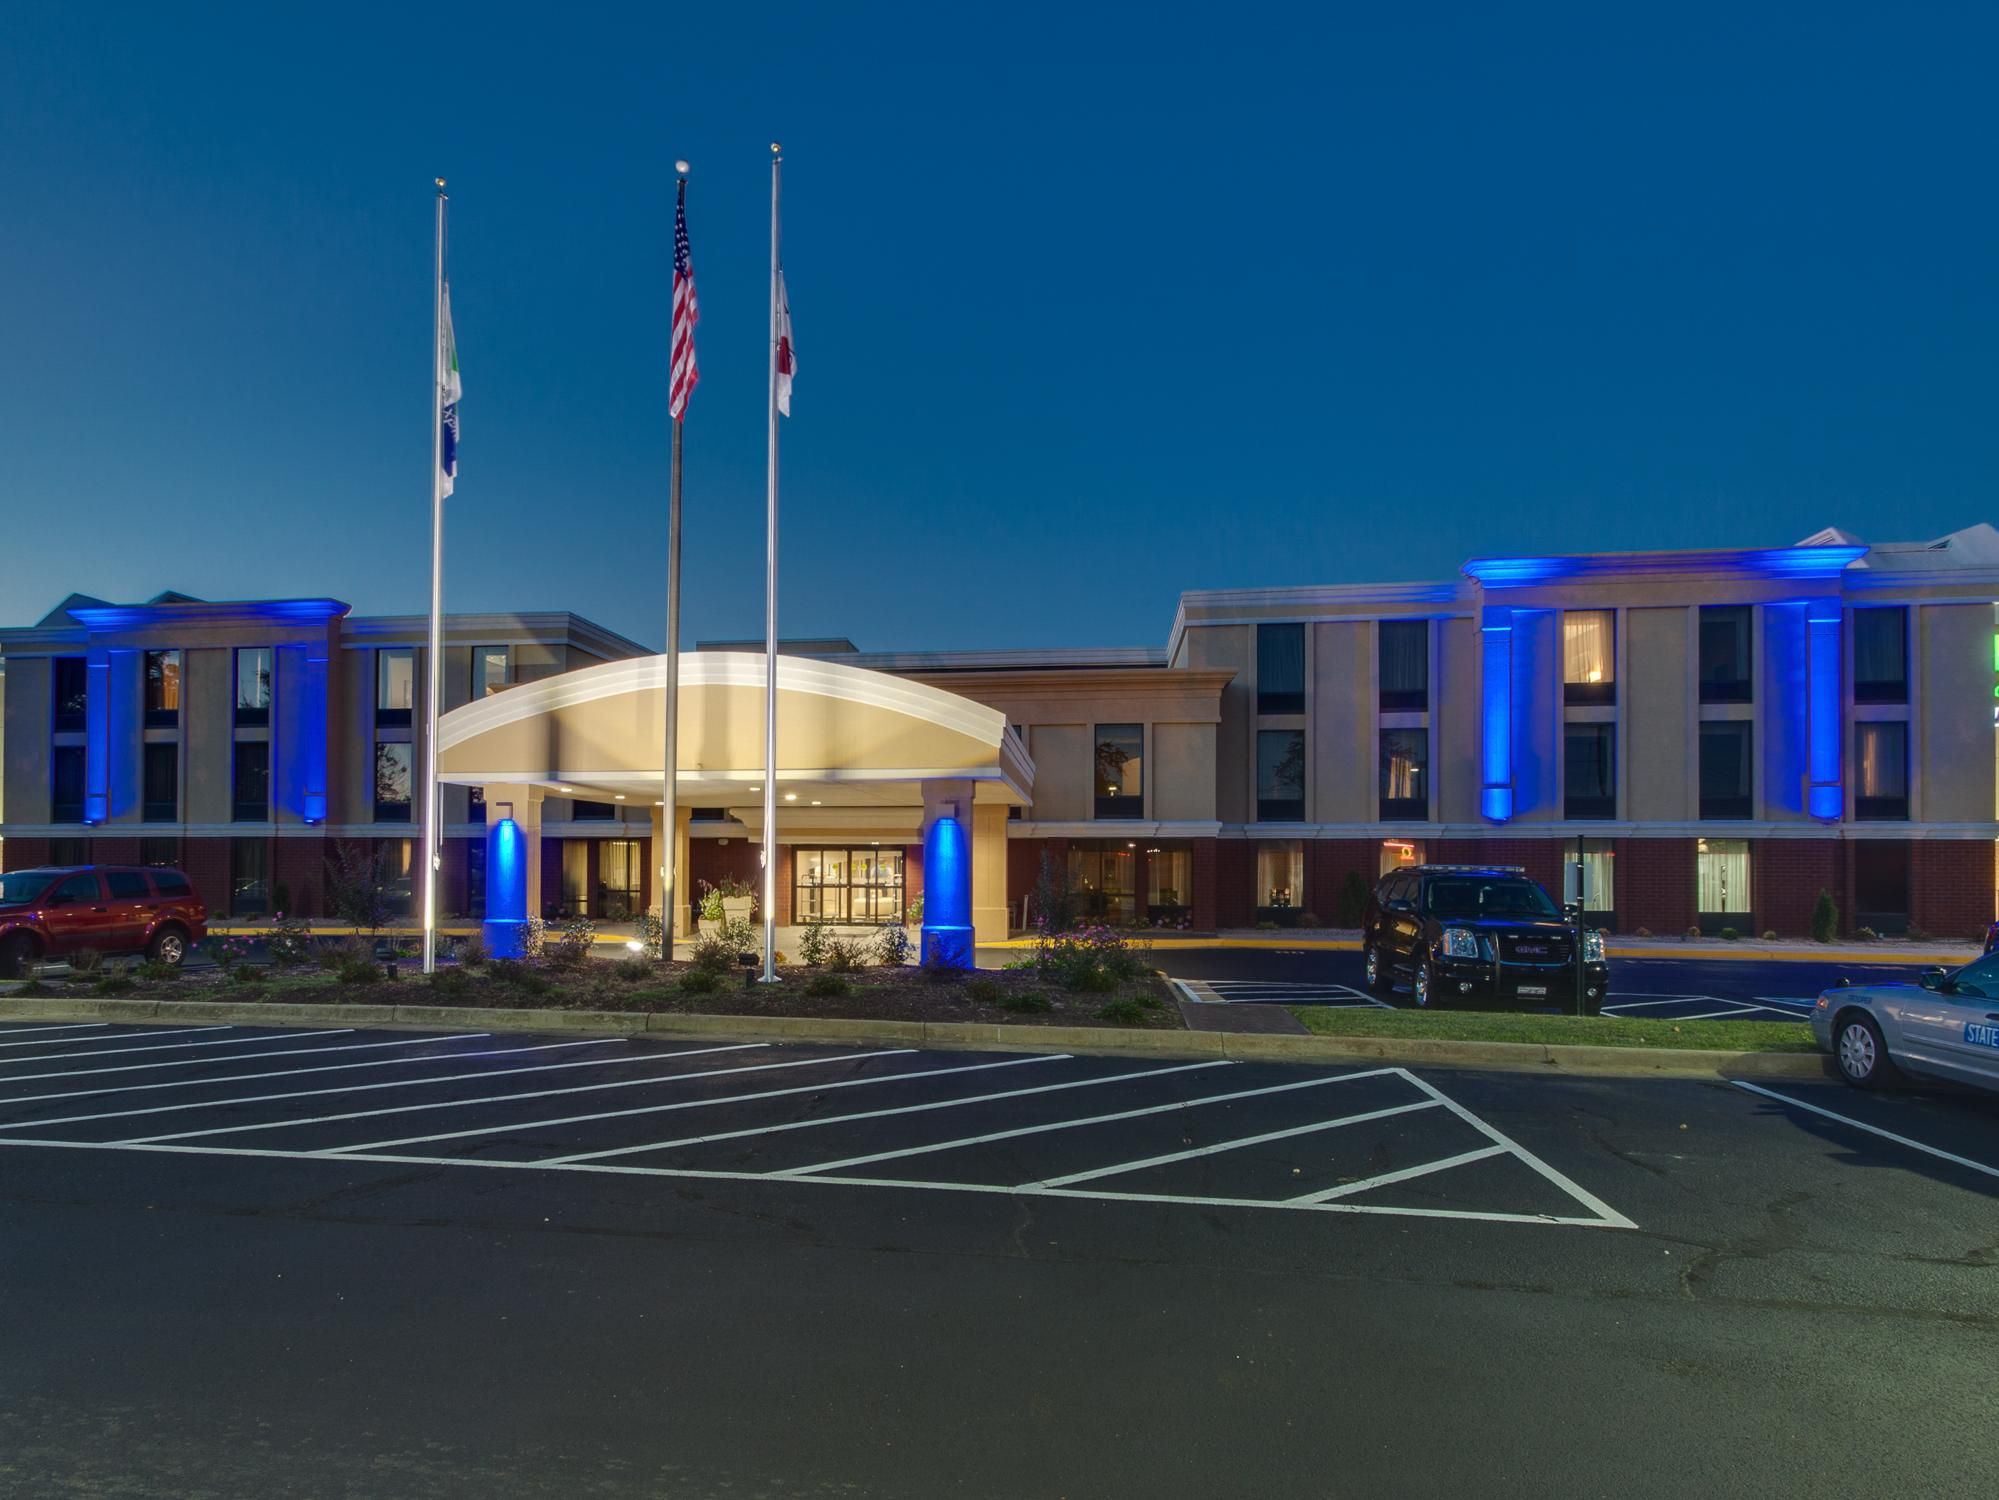 Holiday Inn Express Richmond Midlothian Turnpike Hotel Exterior